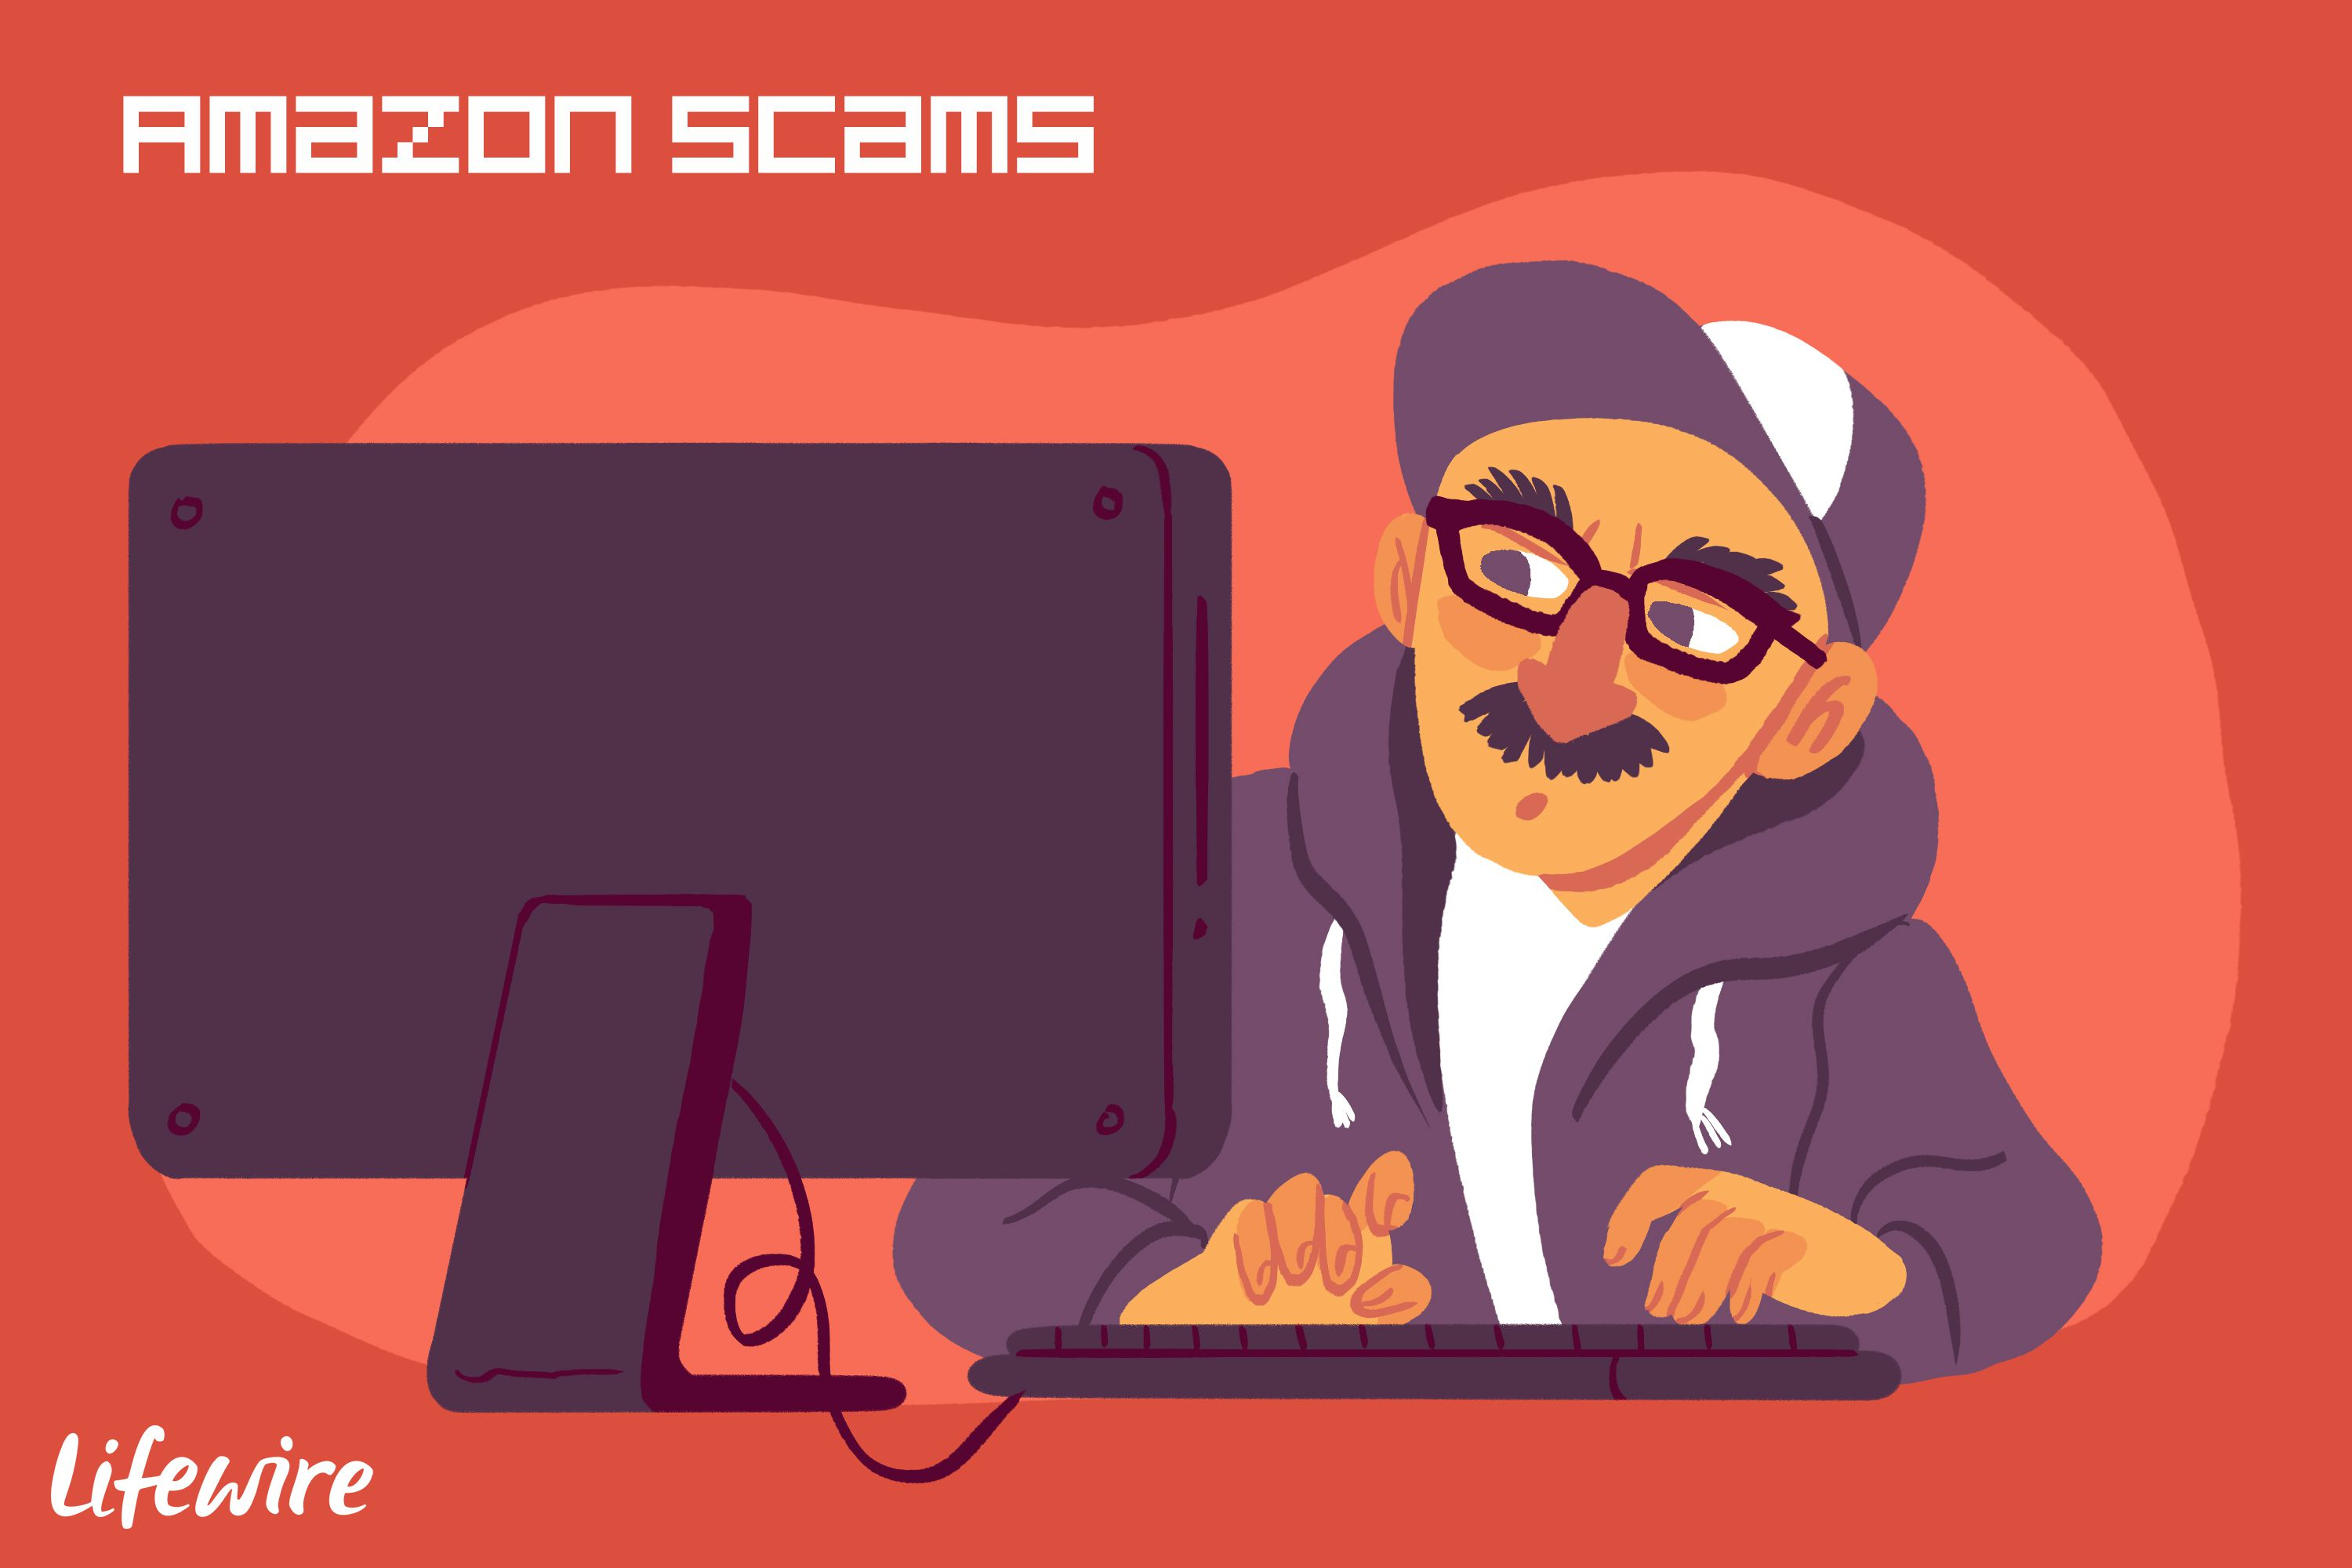 The 10 Top Amazon Scams of 2020 (and How to Avoid Them)